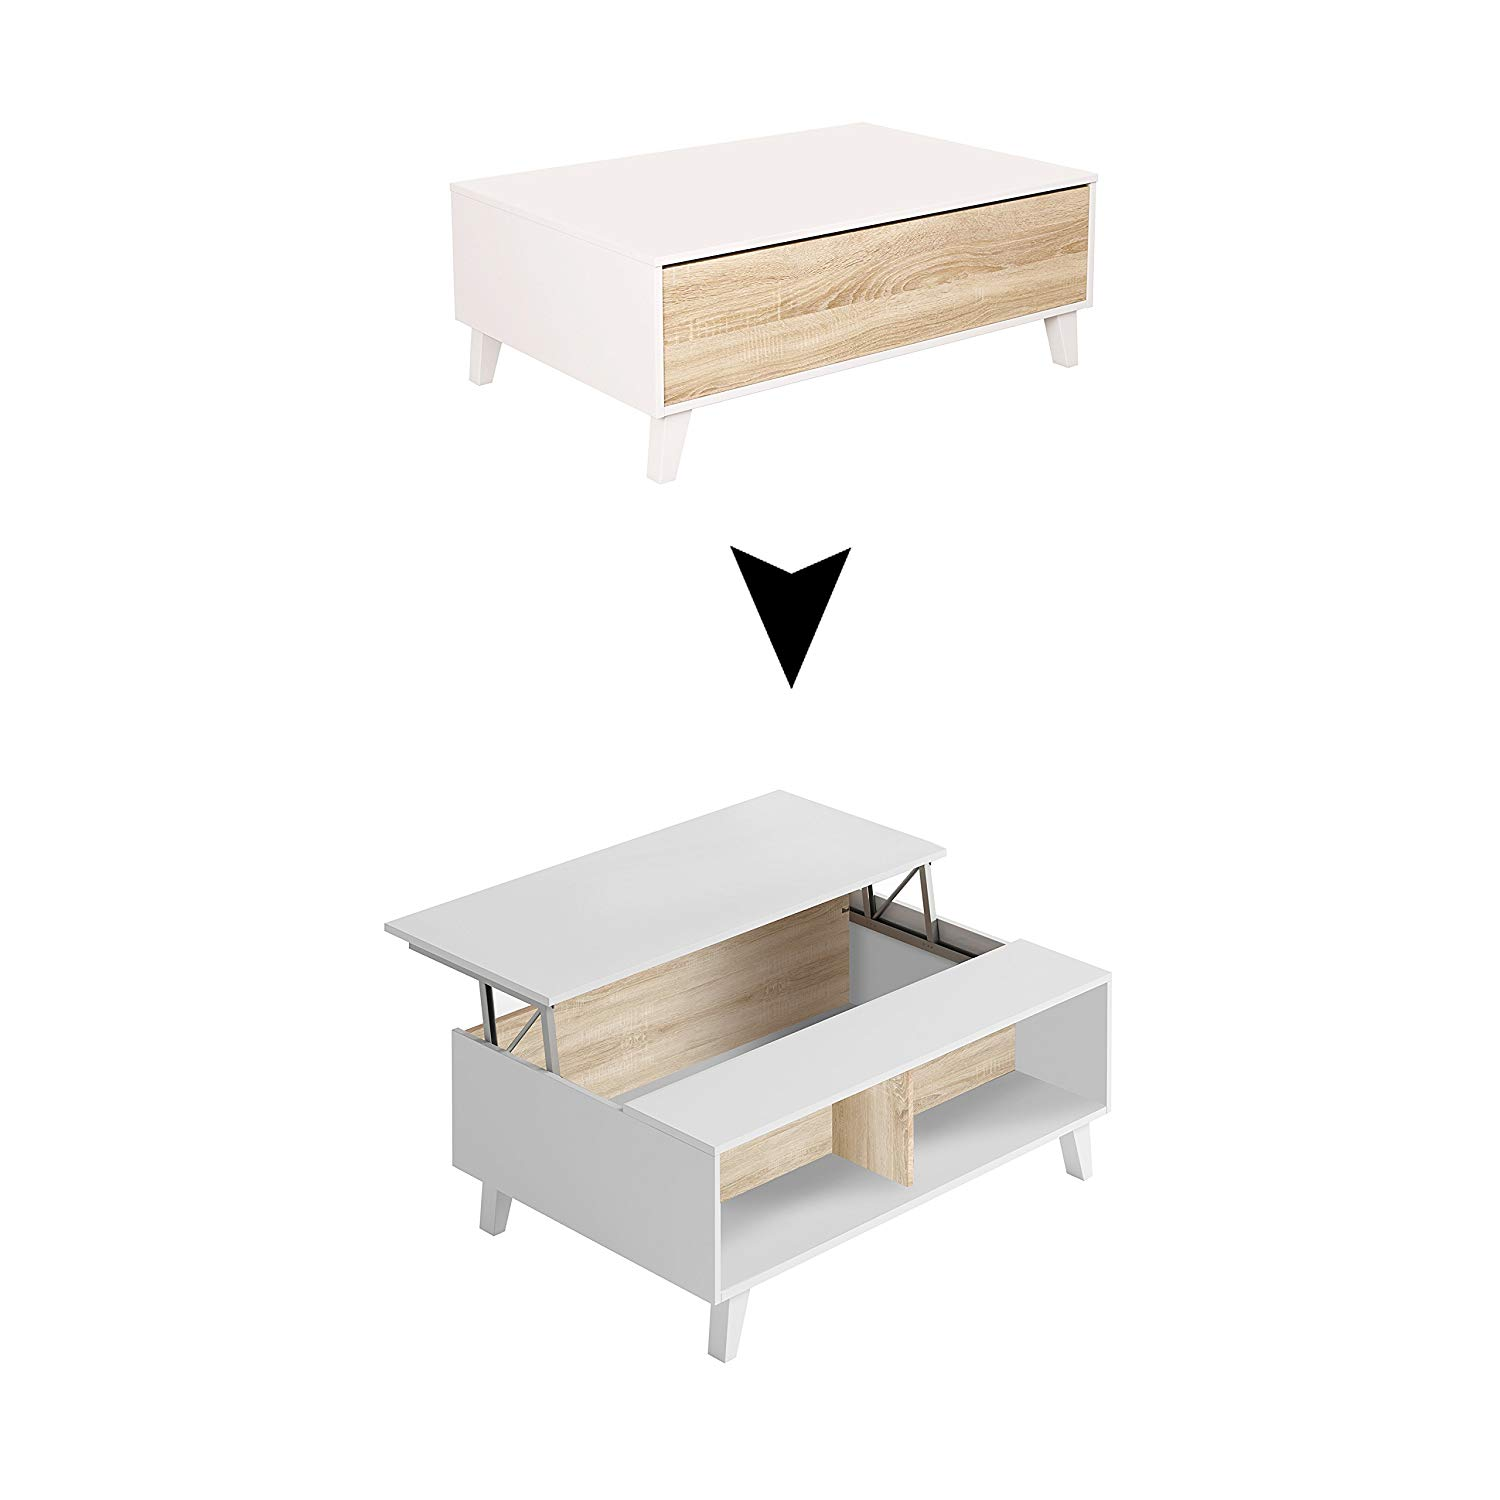 Choisir une table basse relevable scandinave